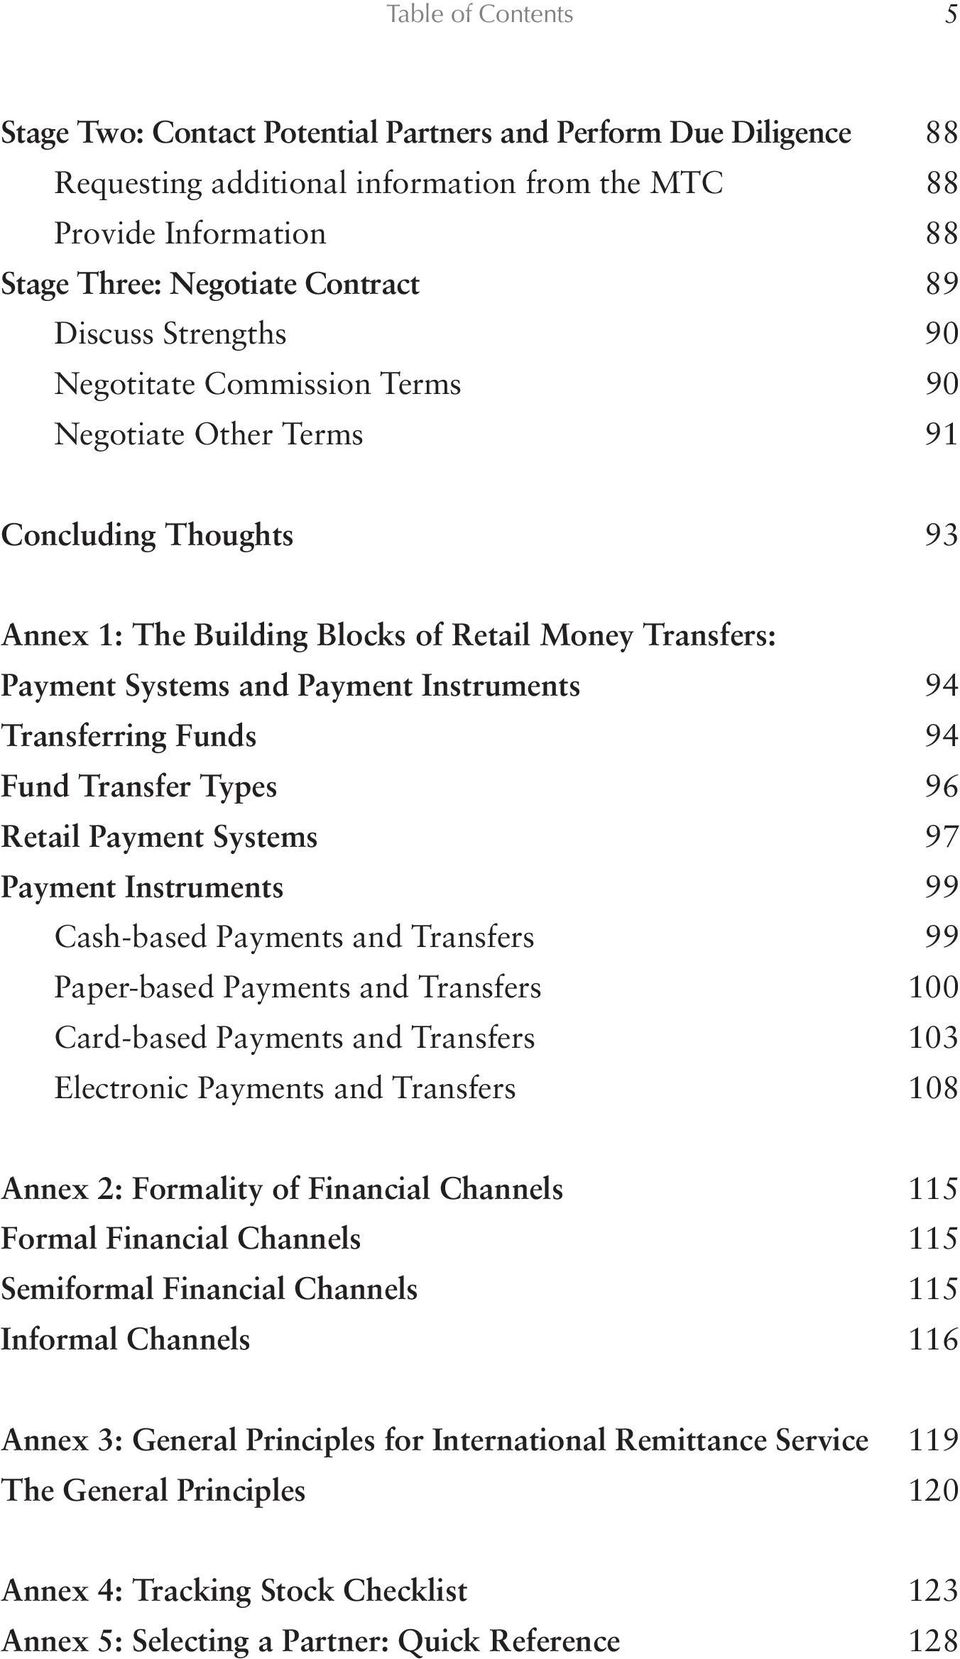 Transferring Funds 94 Fund Transfer Types 96 Retail Payment Systems 97 Payment Instruments 99 Cash-based Payments and Transfers 99 Paper-based Payments and Transfers 100 Card-based Payments and